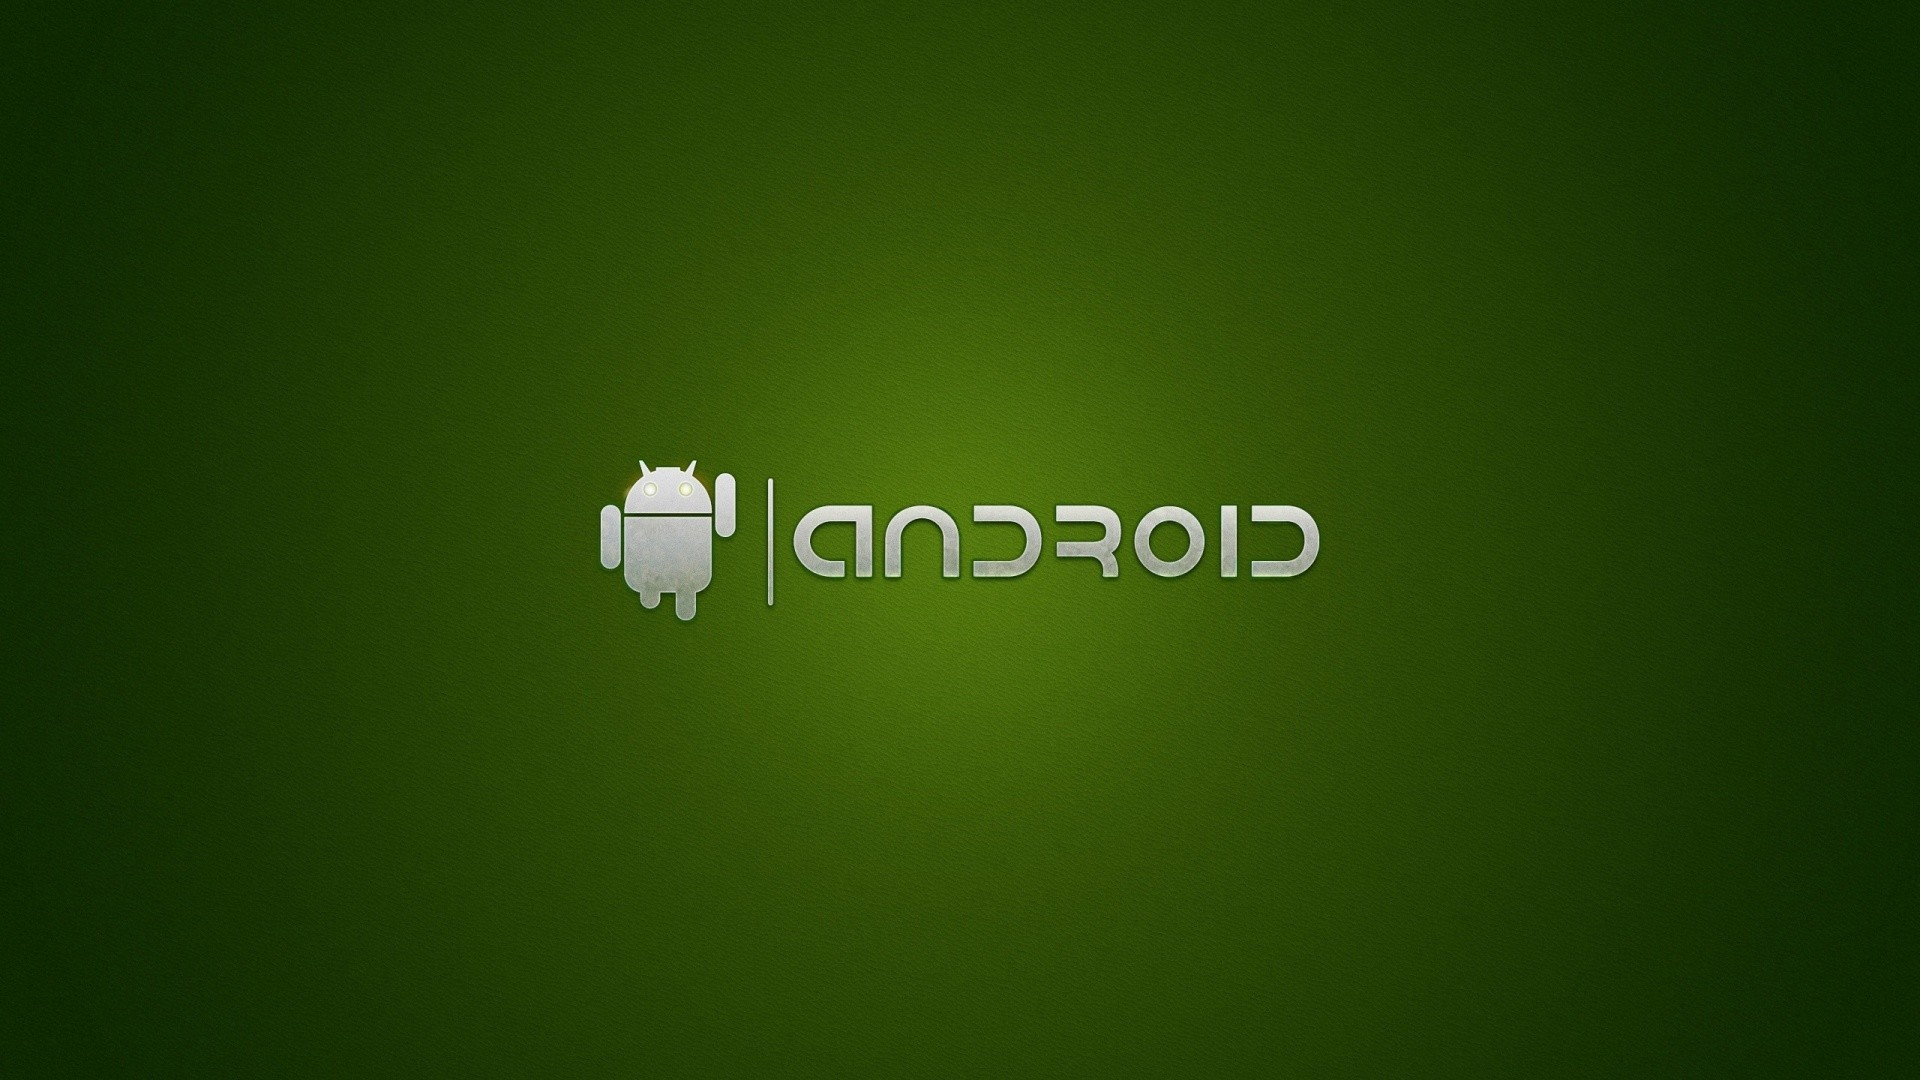 1920x1080 wallpapers dark android animated green